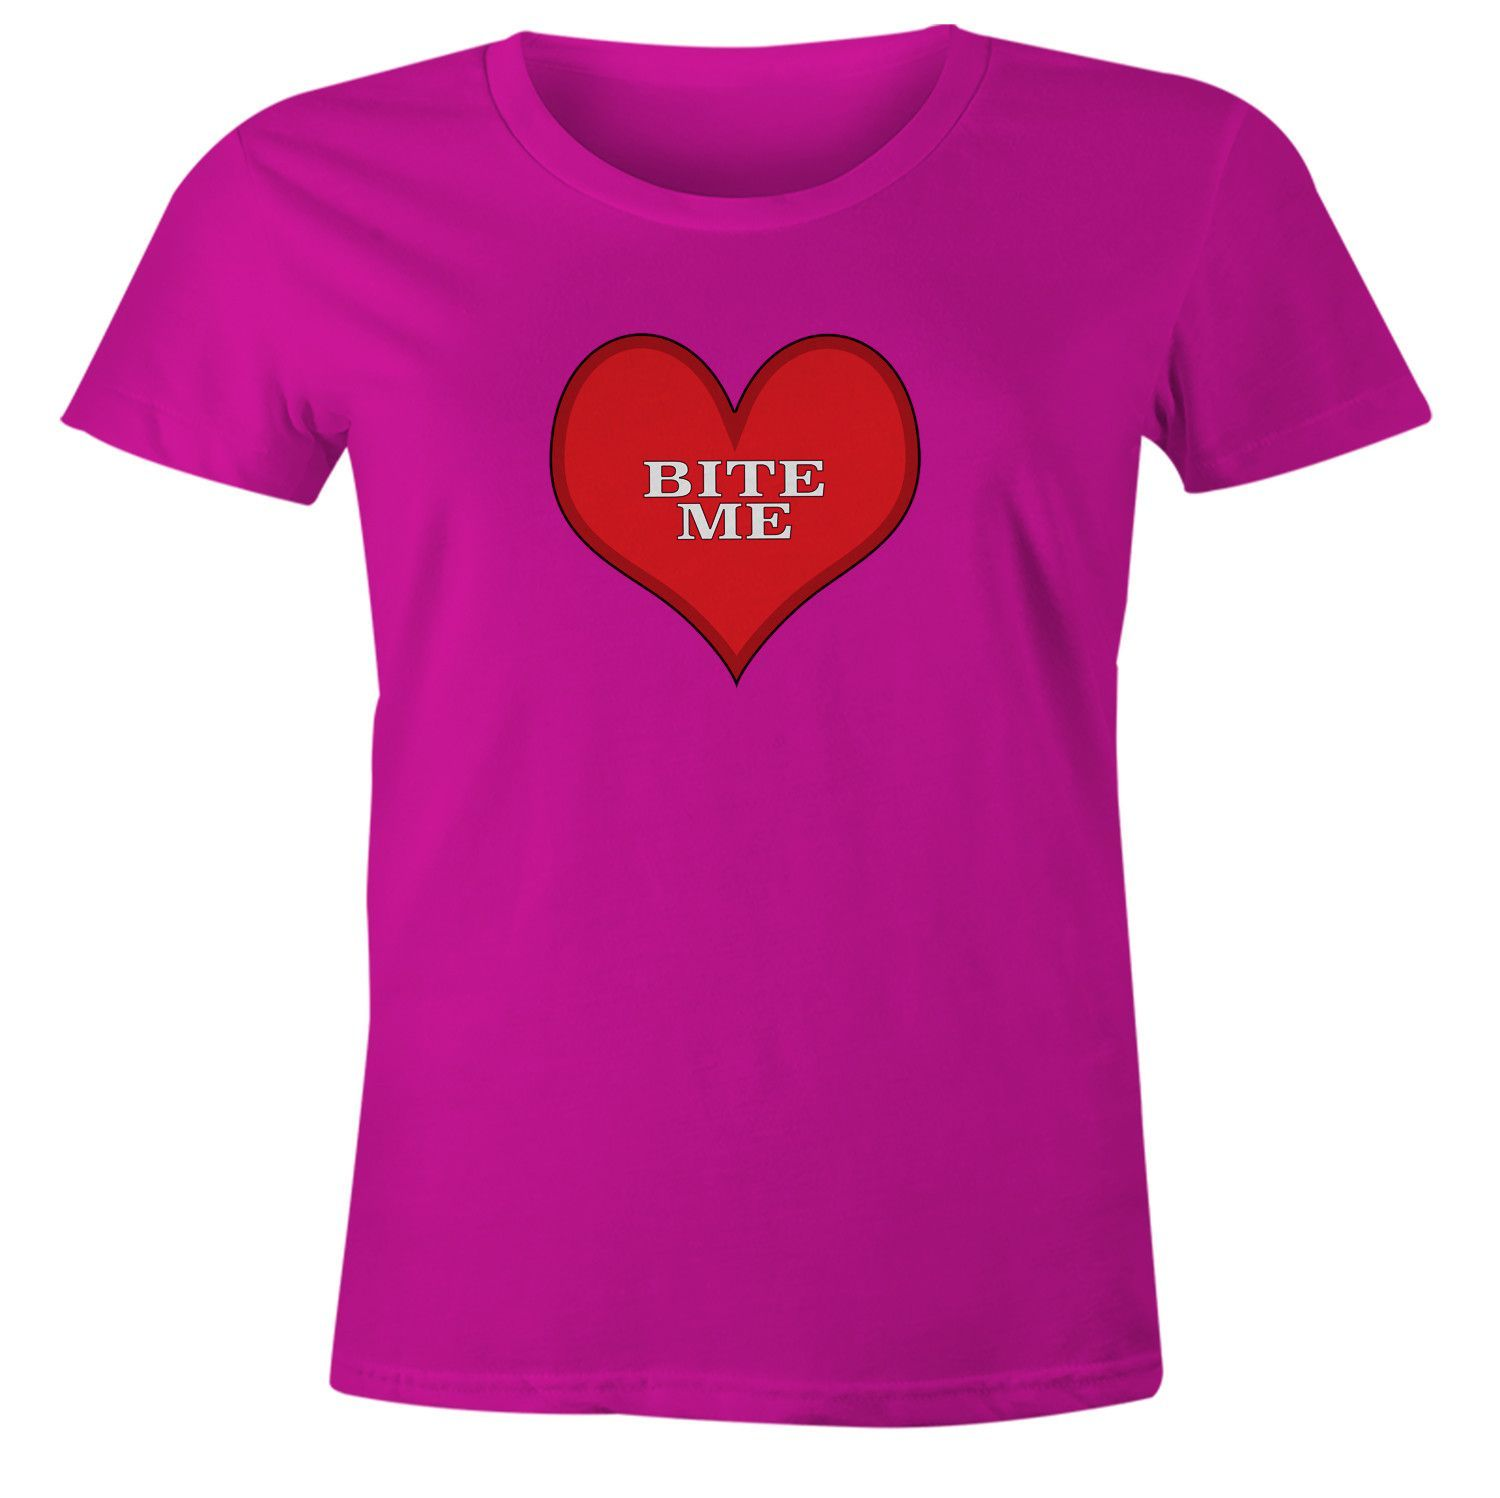 anti valentines day candy bite me t shirt - Anti Valentines Day Shirts